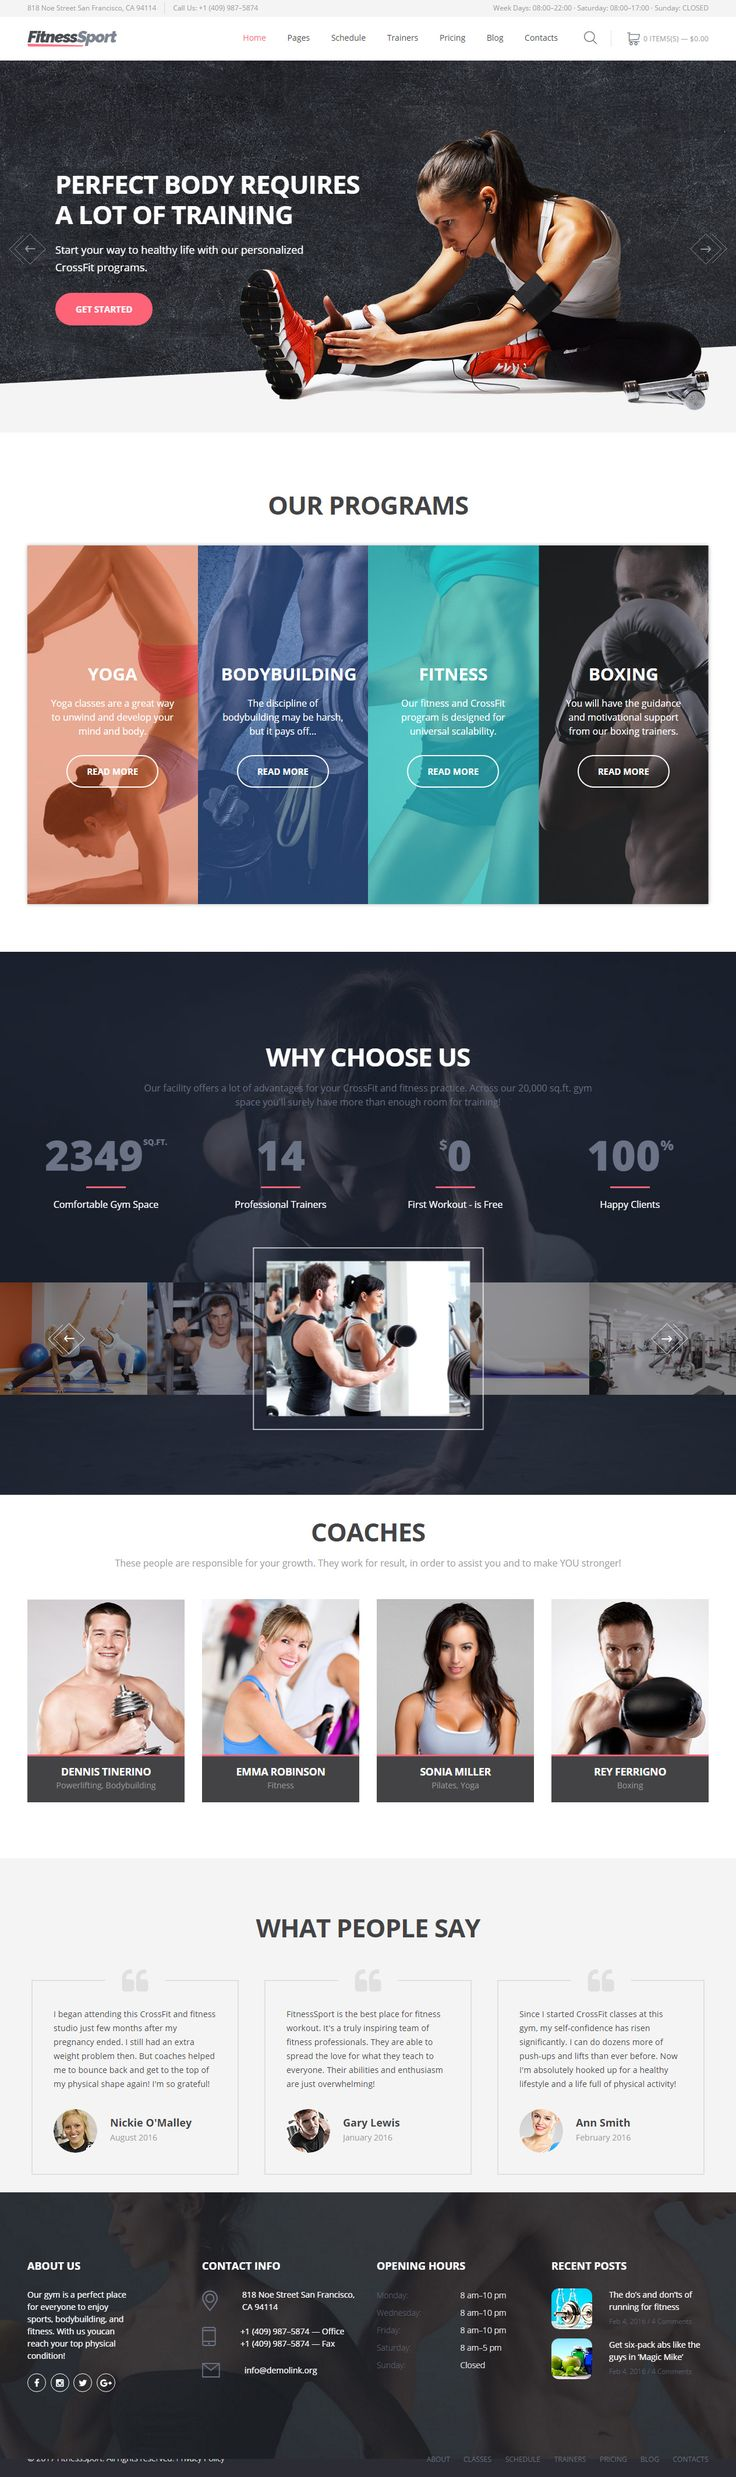 FitnessSport is Premium Responsive Parallax #HTML5 Template. Bootstrap 3 Framework. If you like this #FitnessTemplate visit our handpicked list of best #Gym and #Fitness Template at: http://www.respon